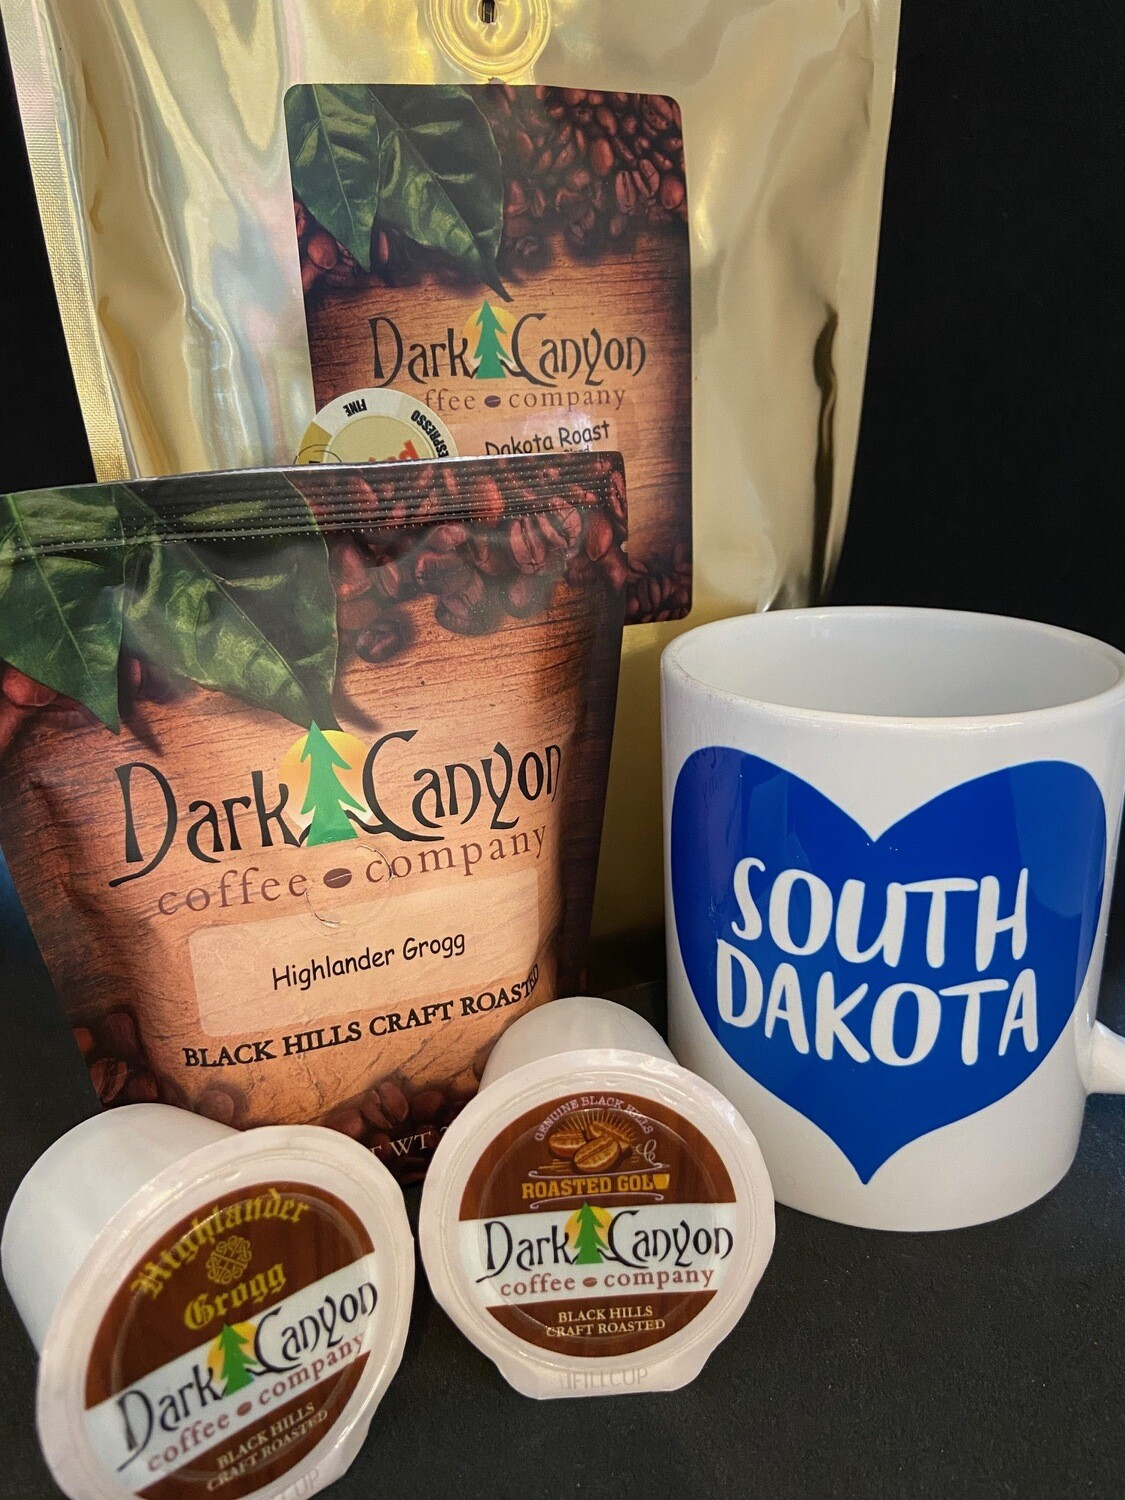 South Dakota Mug + Coffee Gift Set